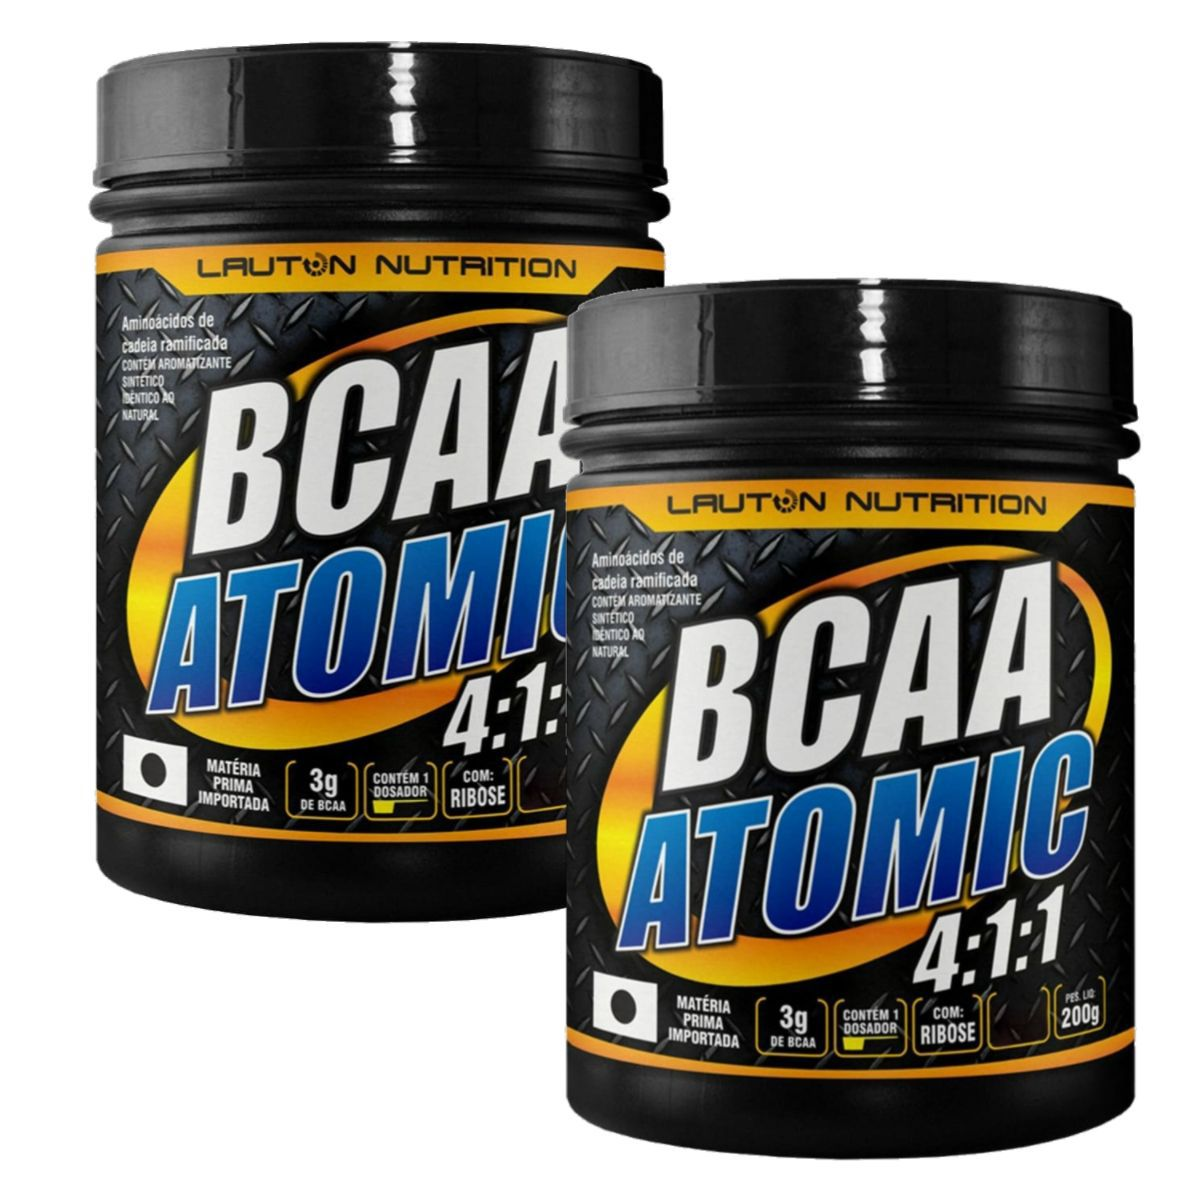 Kit 2 BCAA Atomic 4:1:1 200g - Lauton Nutrition